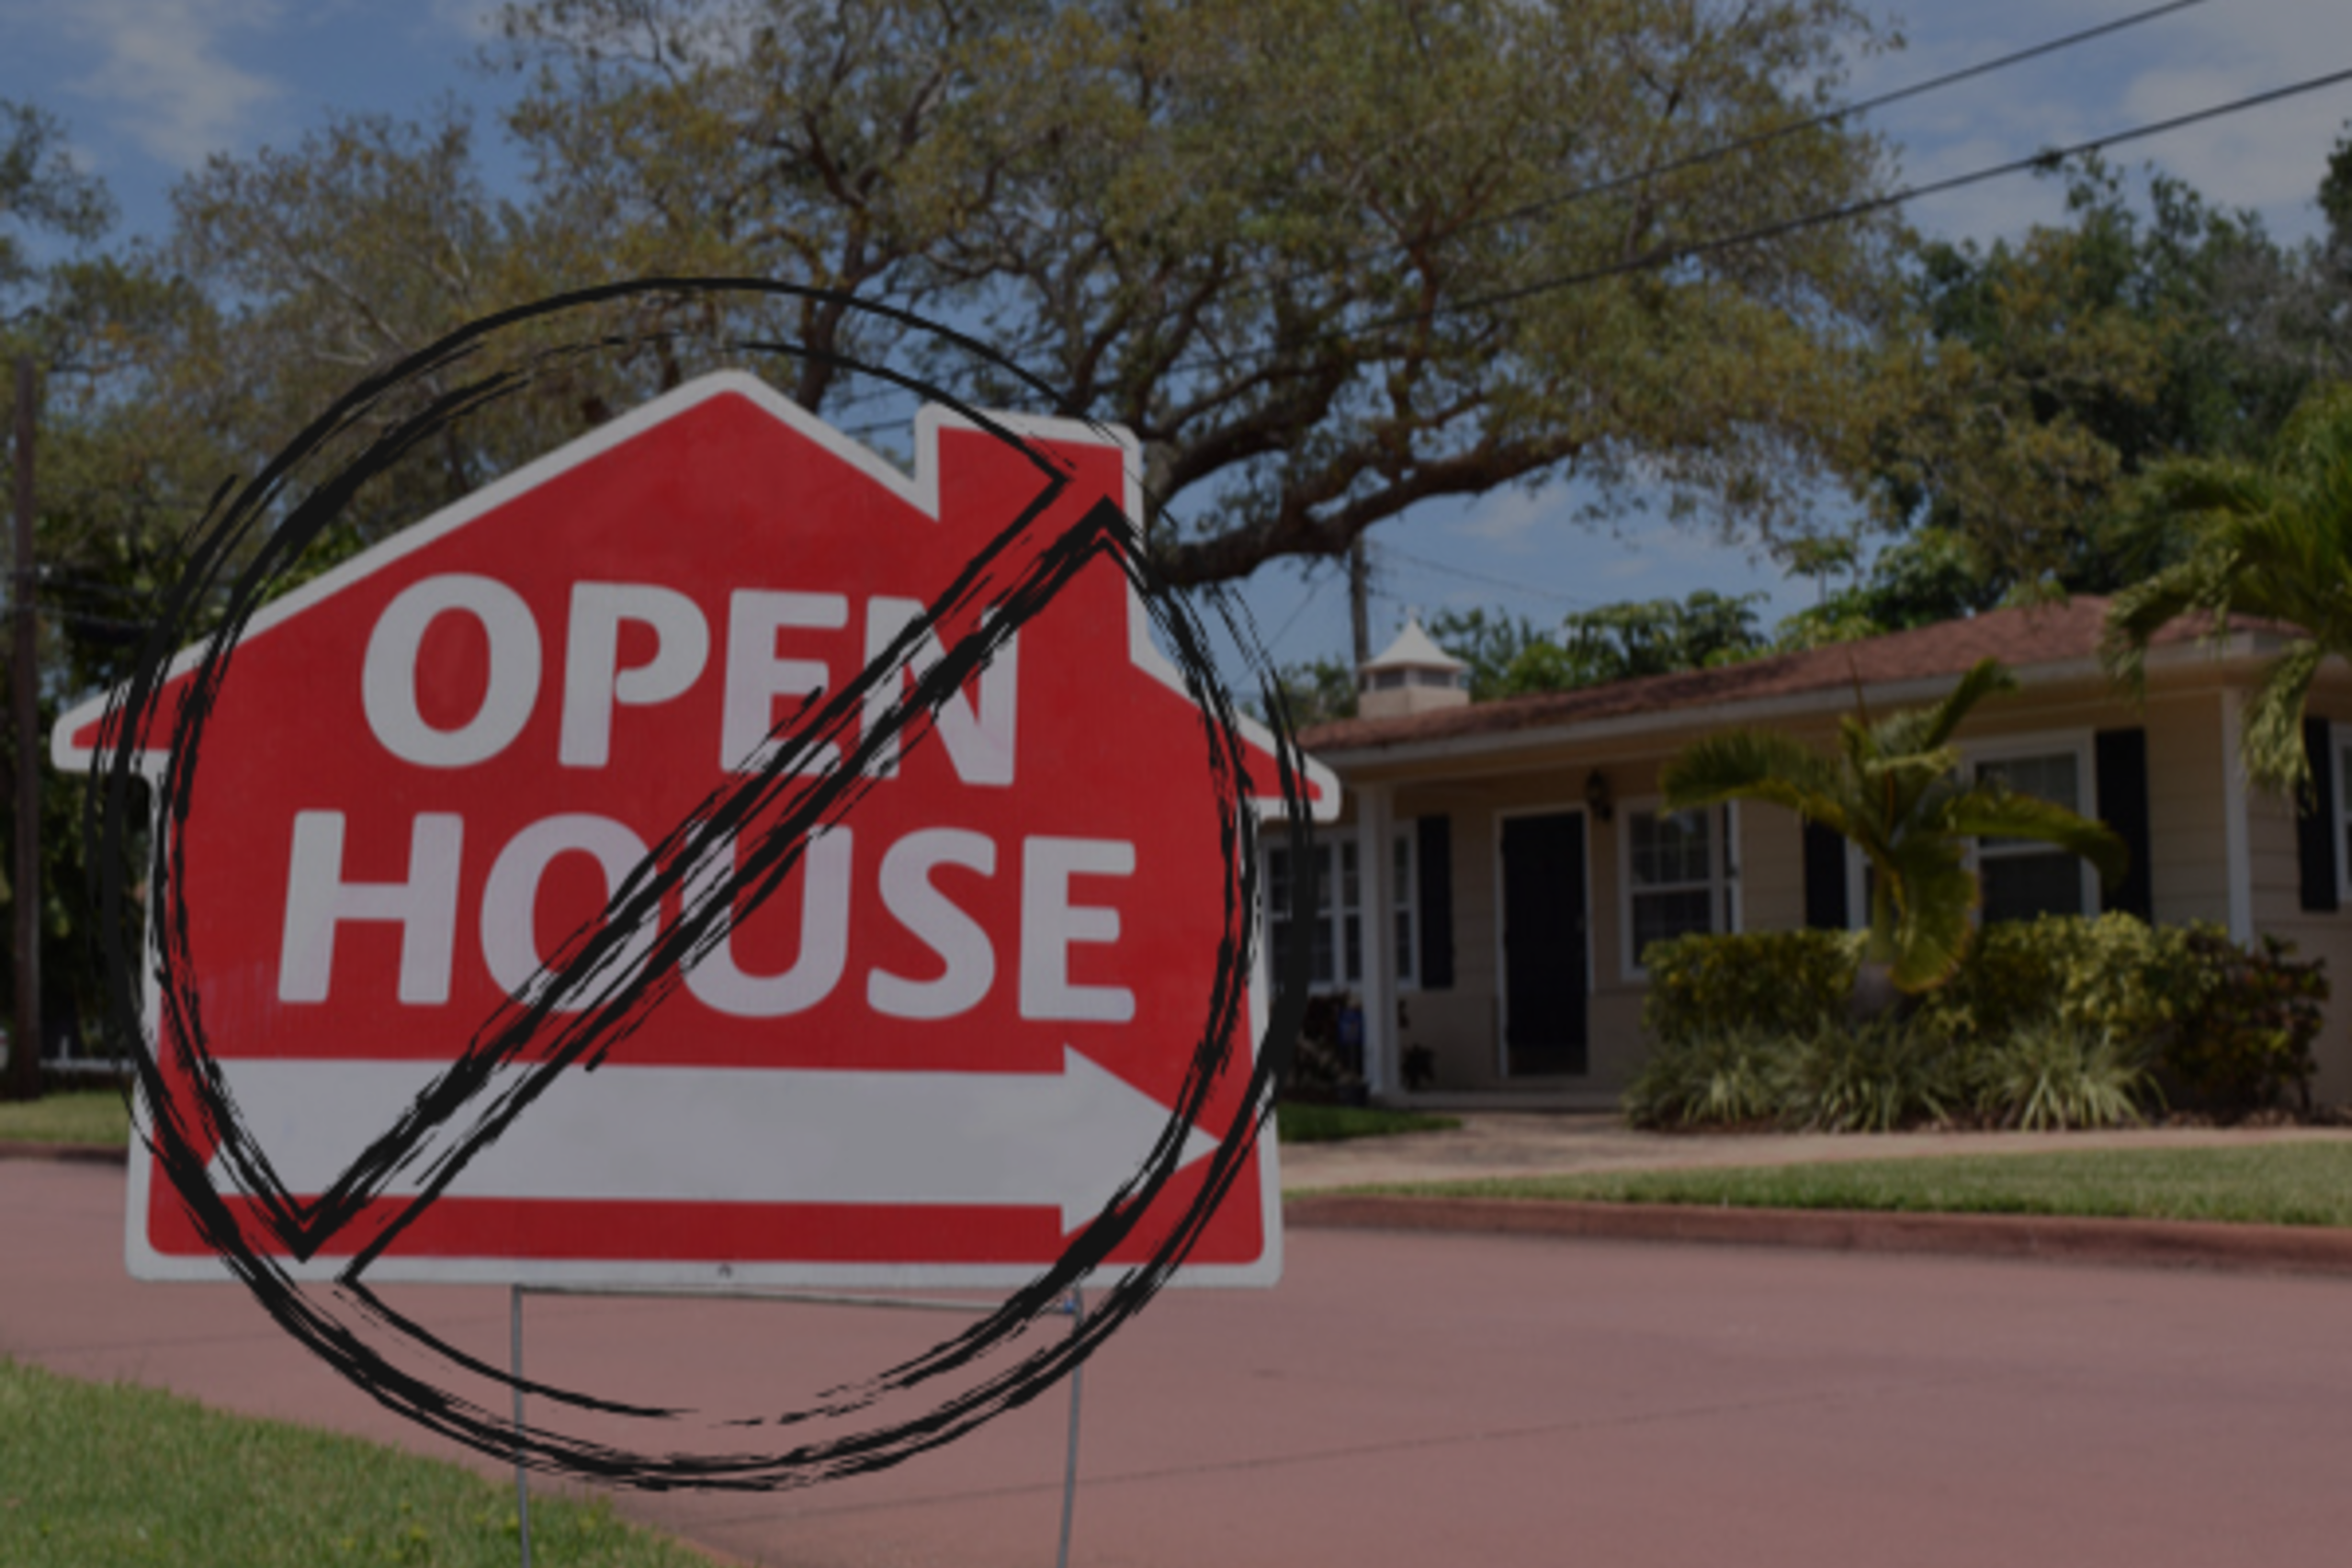 If You Insist On An Open House, We Are Not your REALTORS®